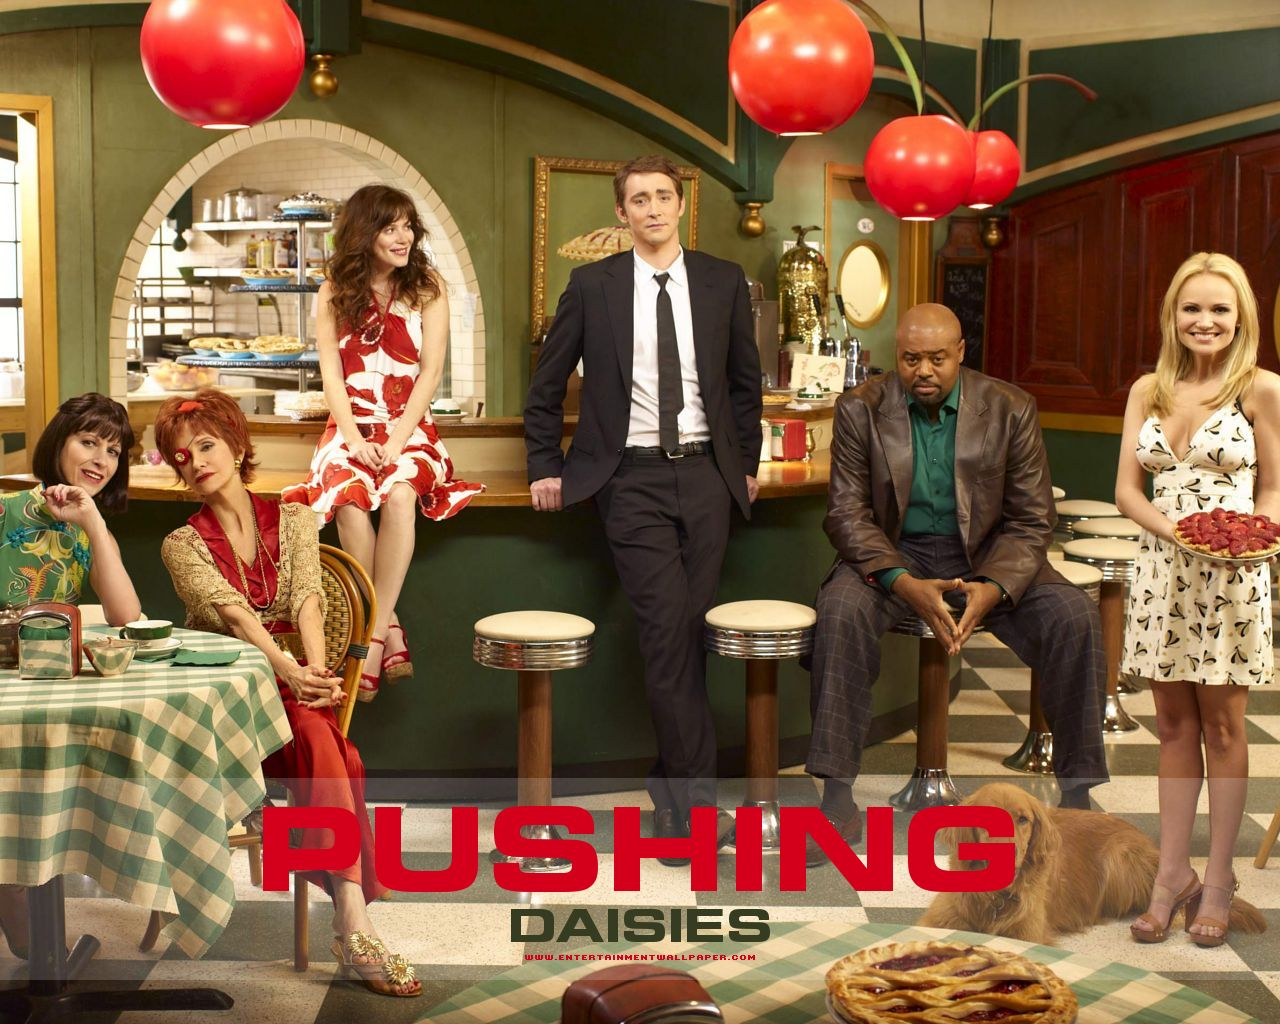 https://i0.wp.com/images.fanpop.com/images/image_uploads/Pushing-Daisies-Cast-pushing-daisies-791484_1280_1024.jpg